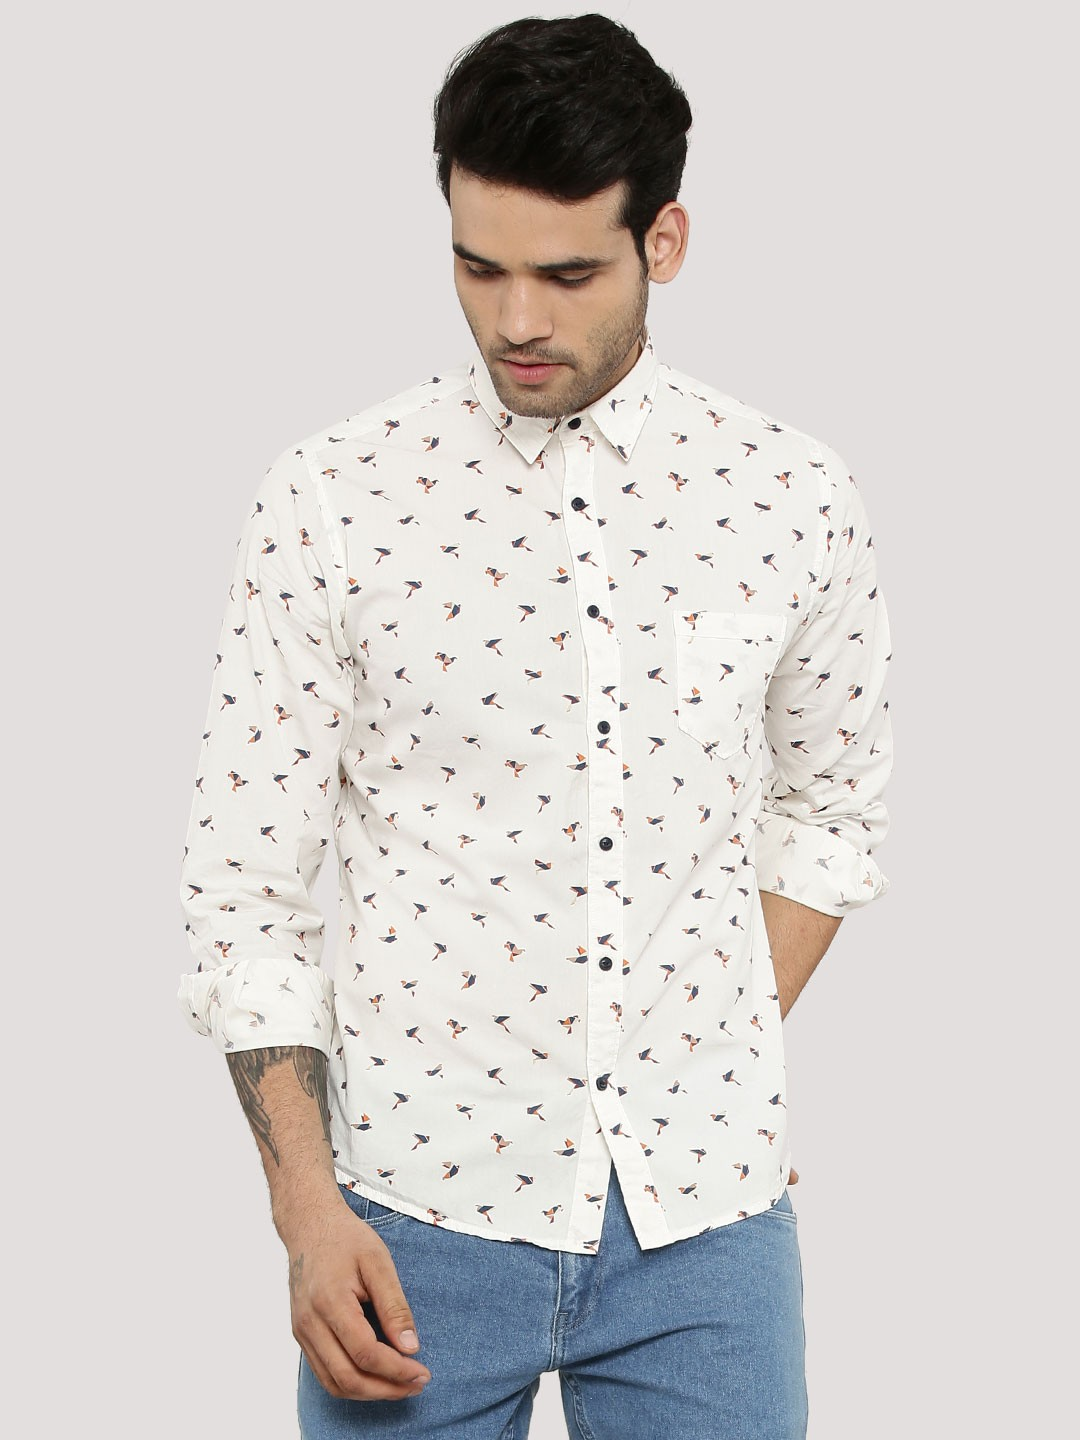 Buy PEPE JEANS Bird Print Shirt For Men - Men's Off-White Casual ...